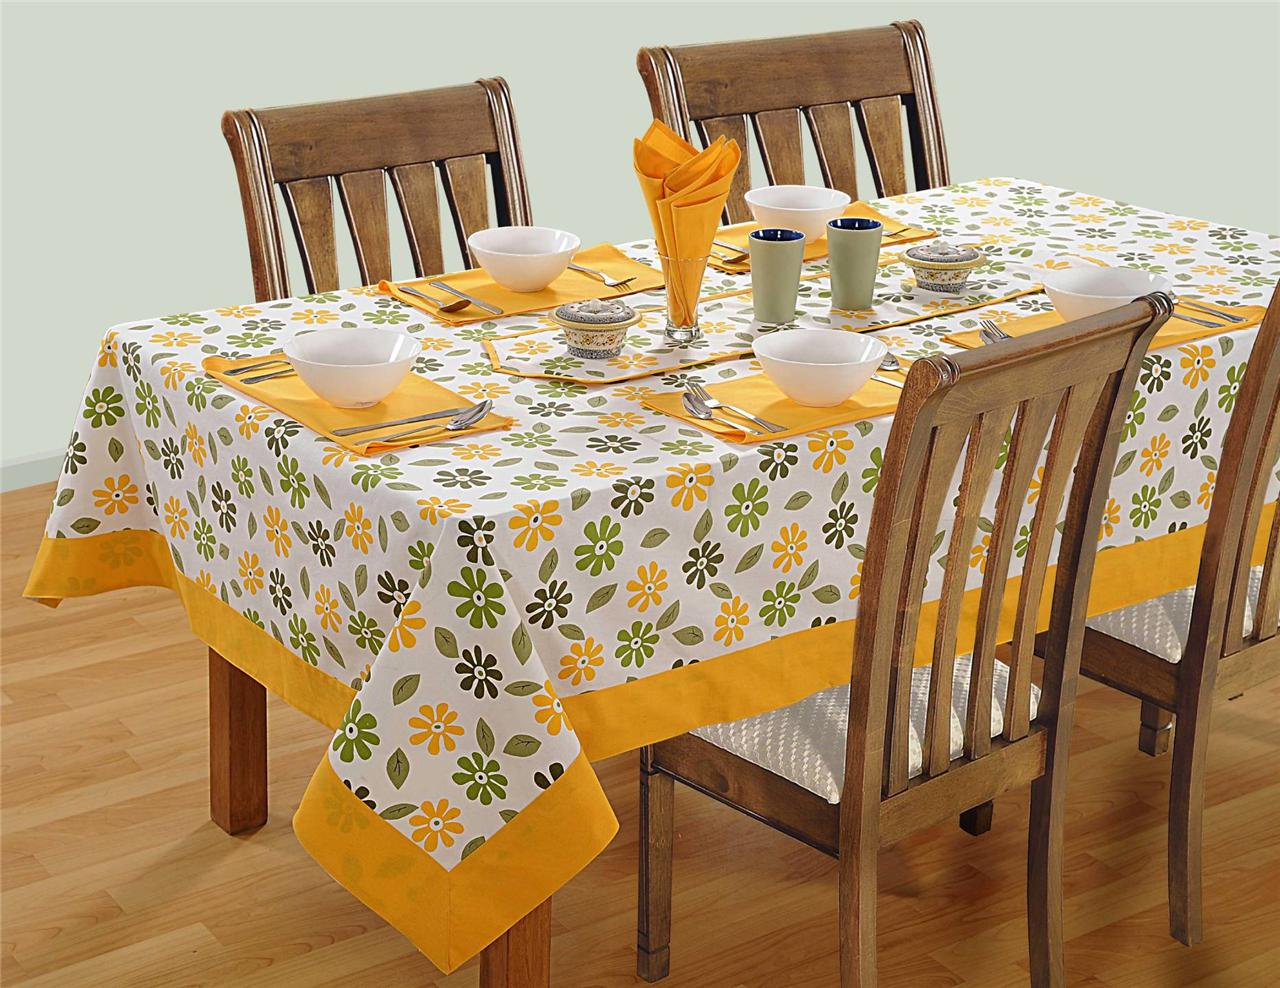 8 Seater Pure Cotton Table Linen Set 1 Table Cloth 8  : 813129031o from www.ebay.com.au size 1280 x 988 jpeg 209kB